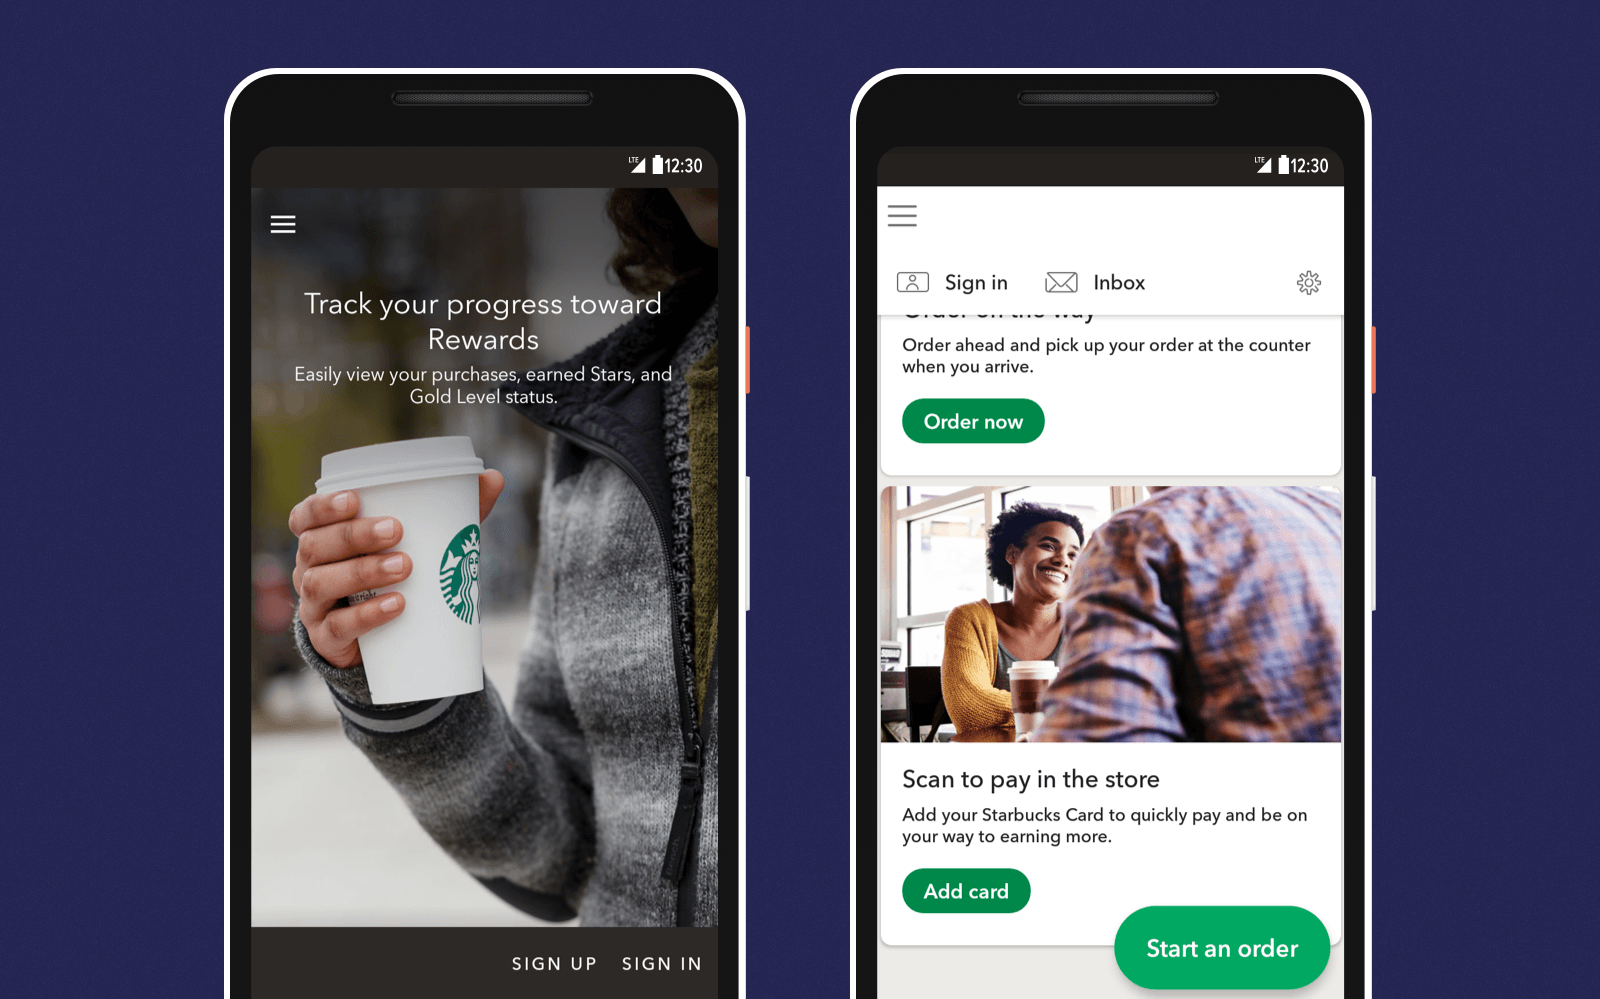 Starbucks is a personalized app that improves the Starbucks cafes experience